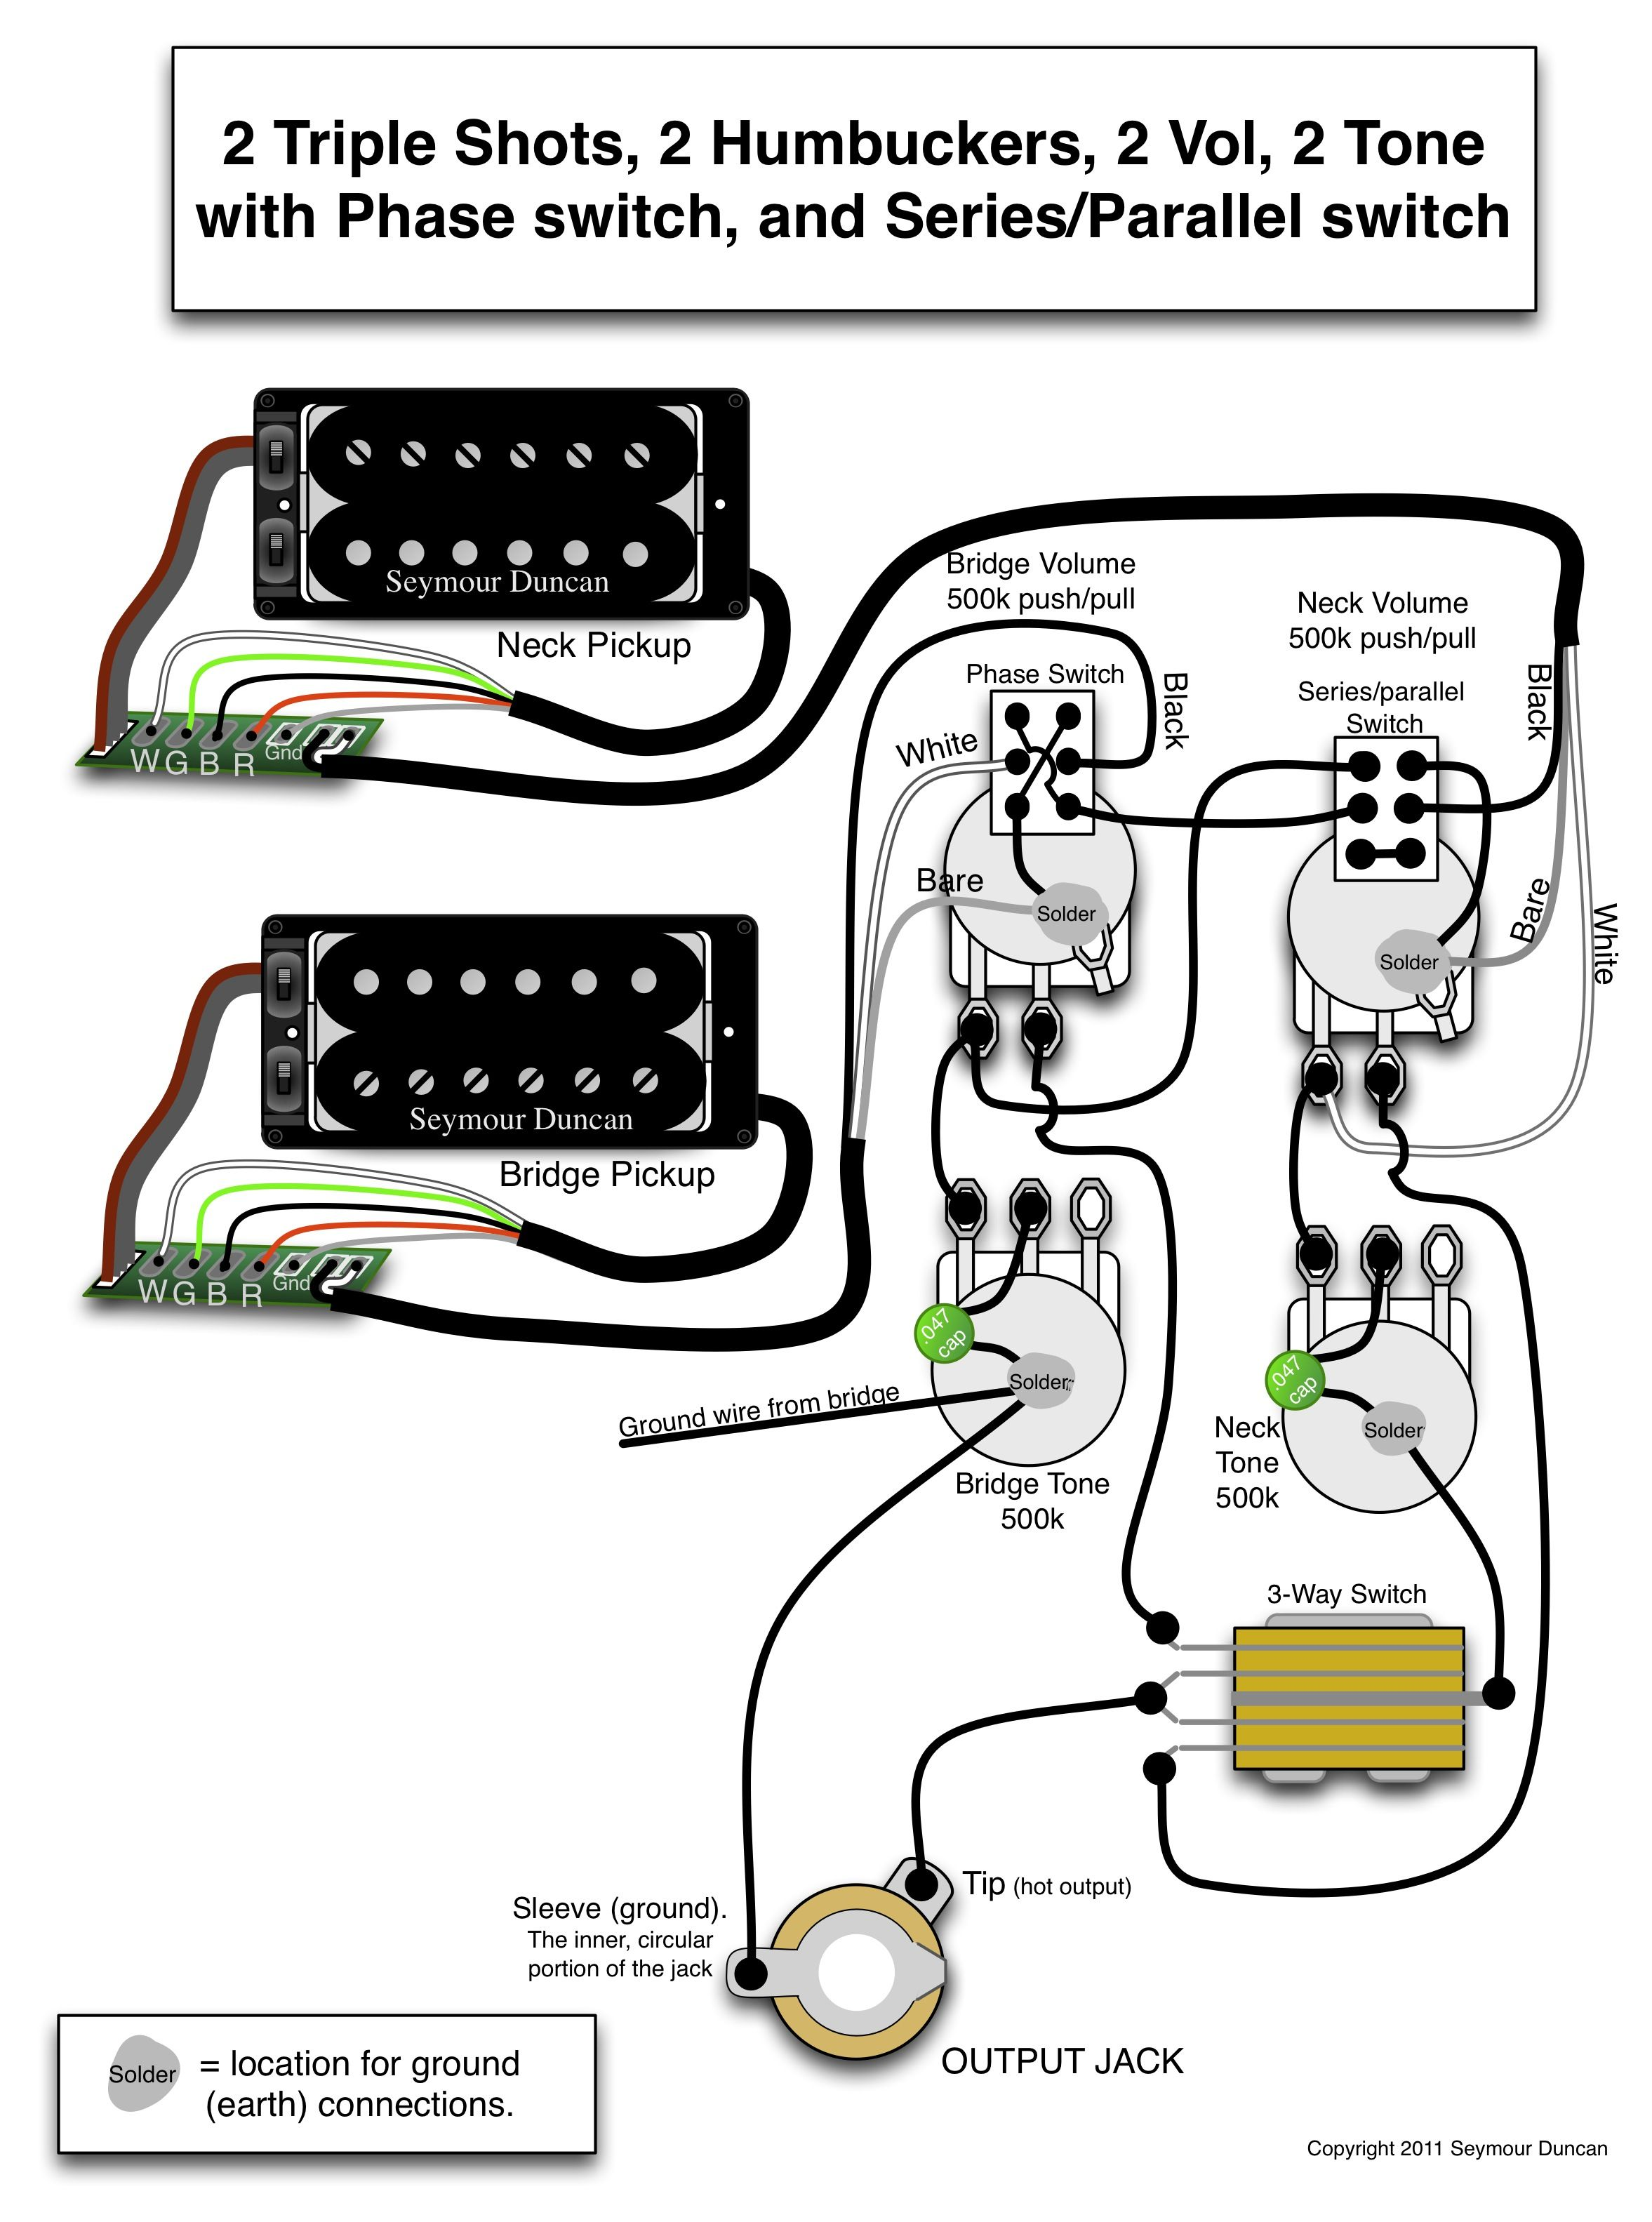 14dc4408abcf3c075a00cd280c1ea7ec seymour duncan wiring diagram 2 triple shots, 2 humbuckers, 2  at readyjetset.co